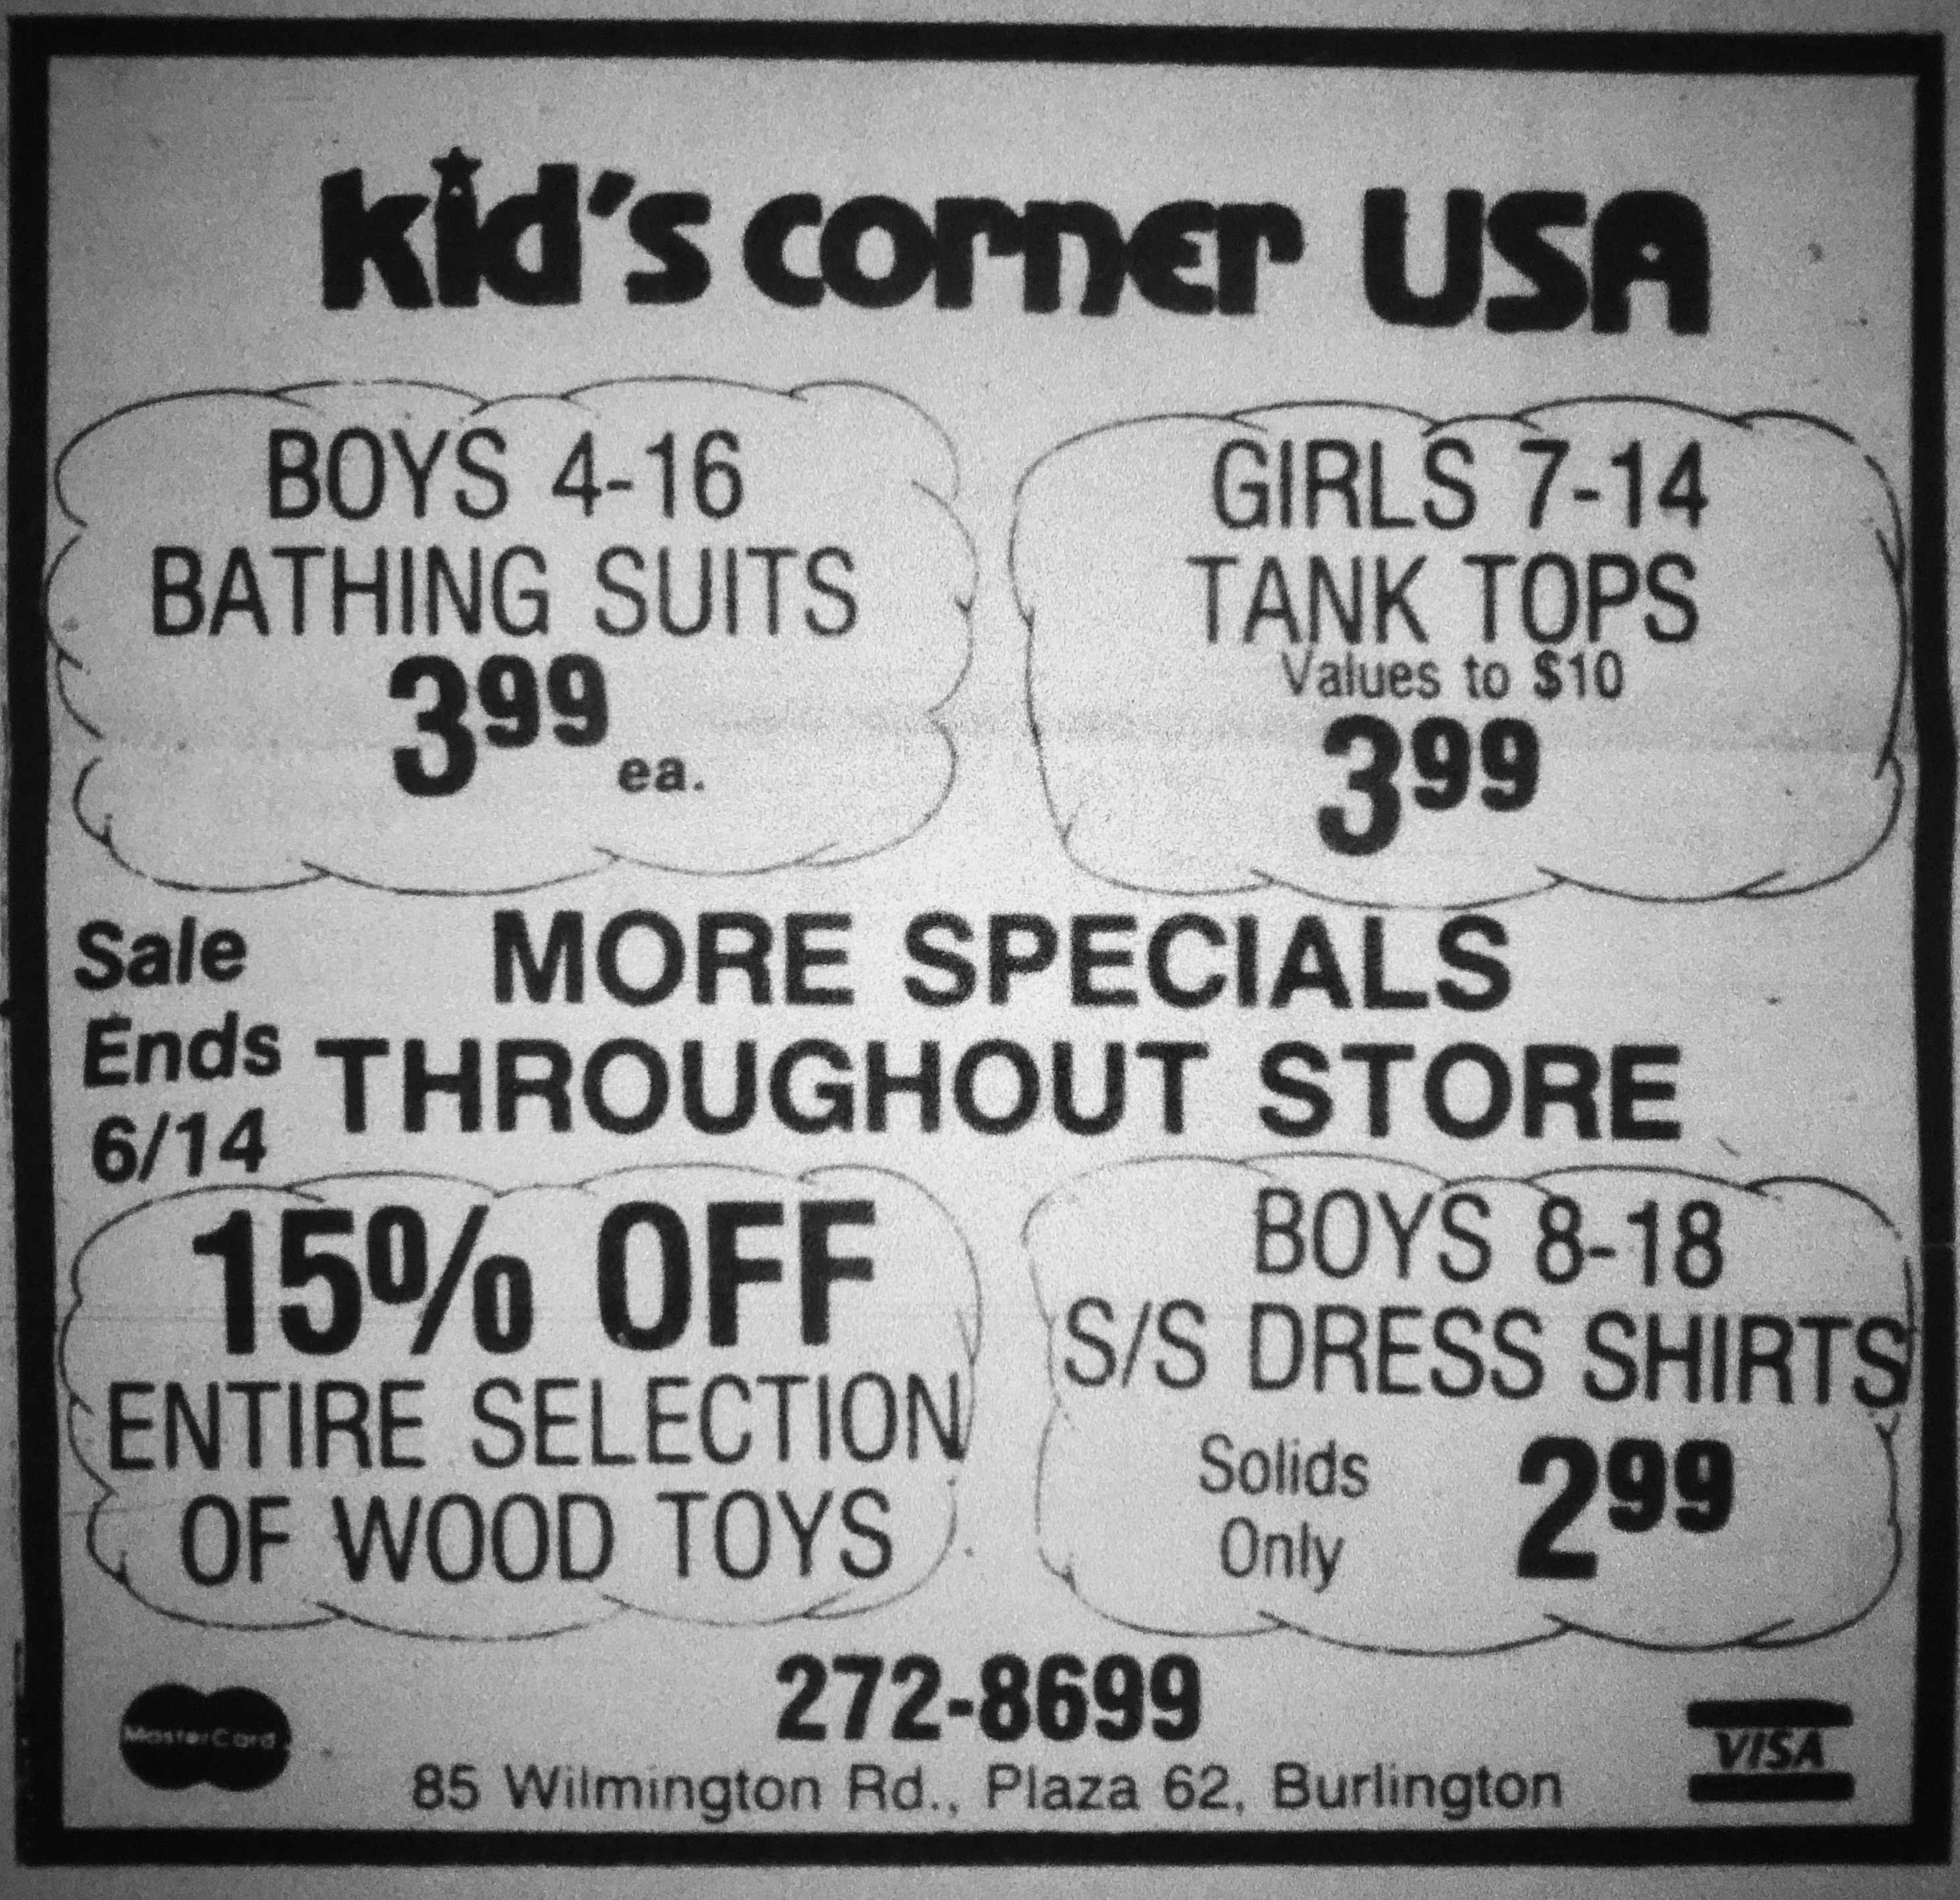 Kid's Corner USA, Burlington, MA